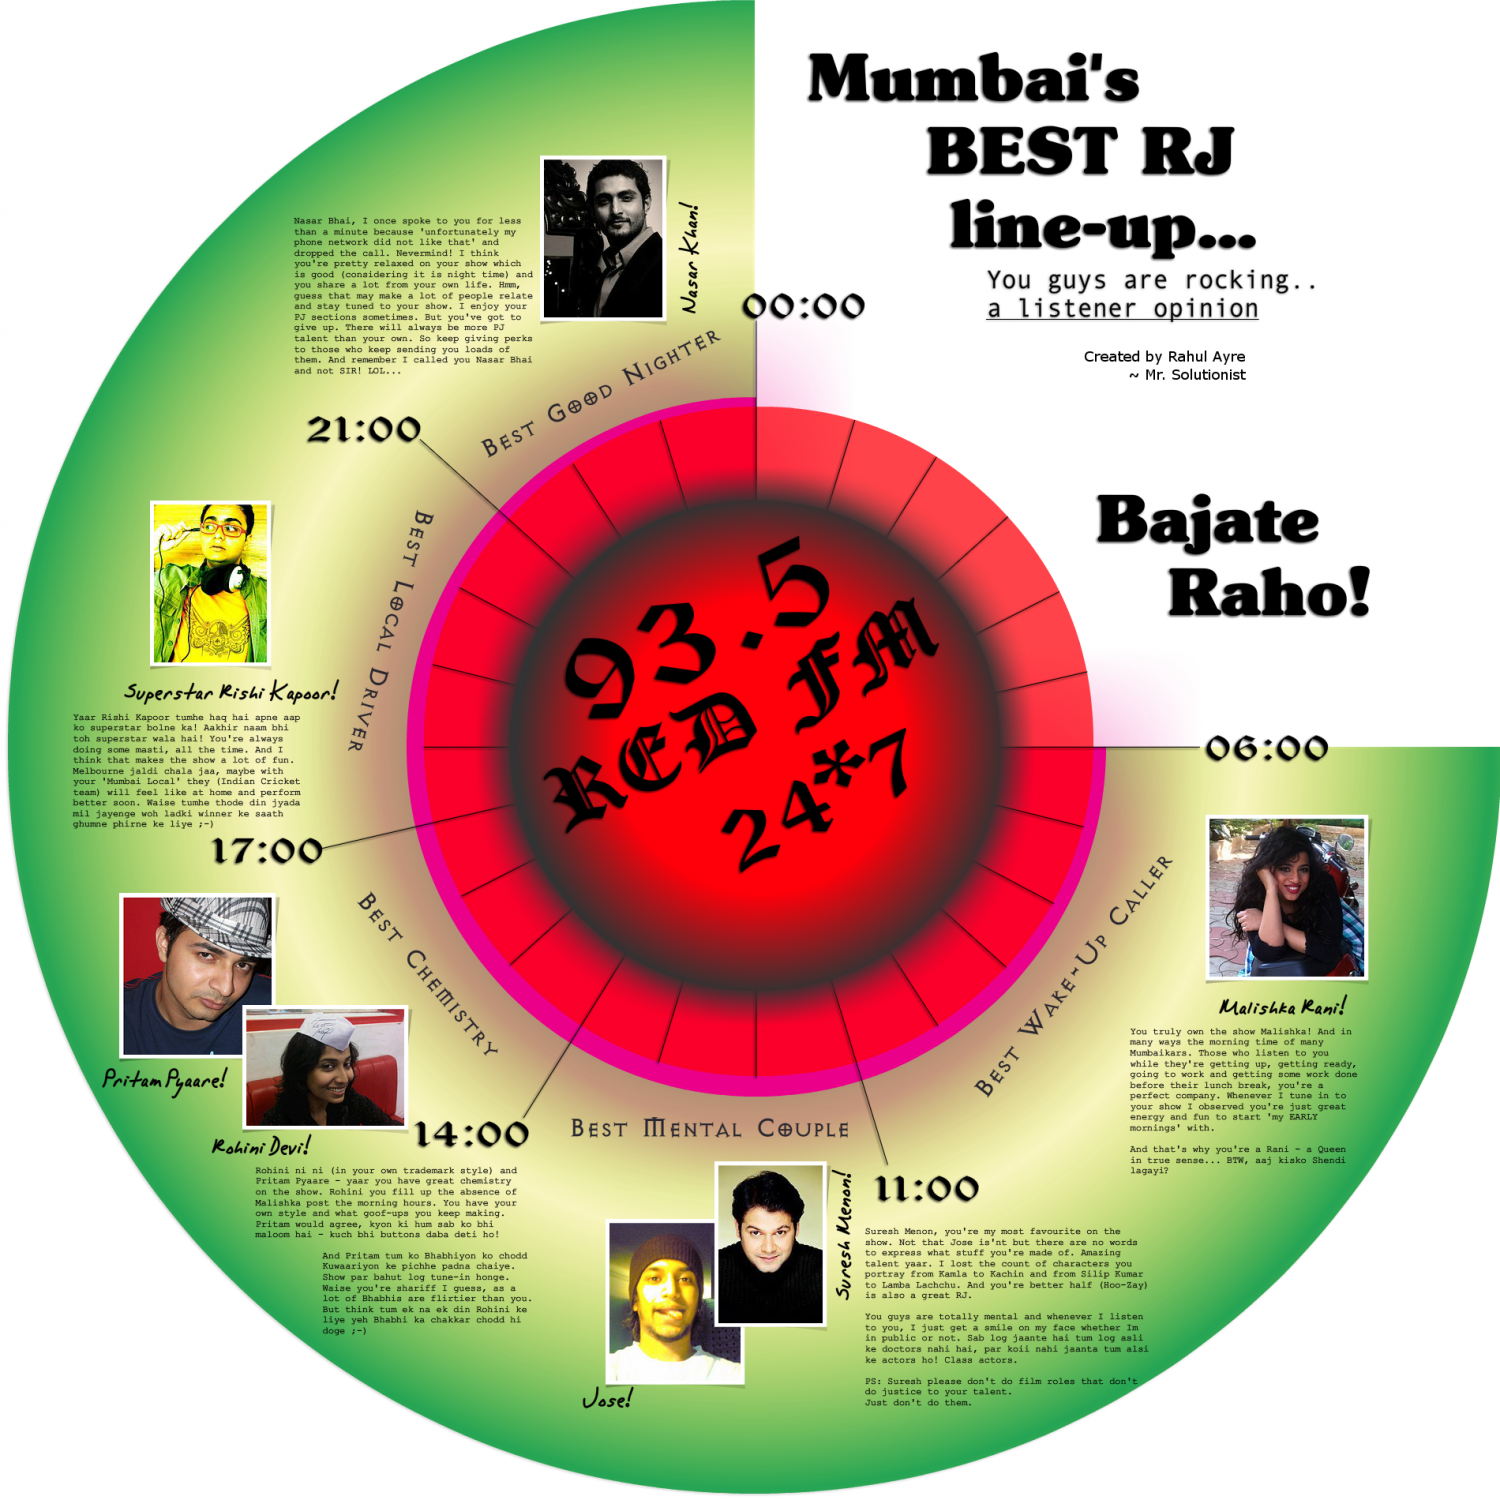 Mumbai's Best Radio Jockey Line-Up Infographic